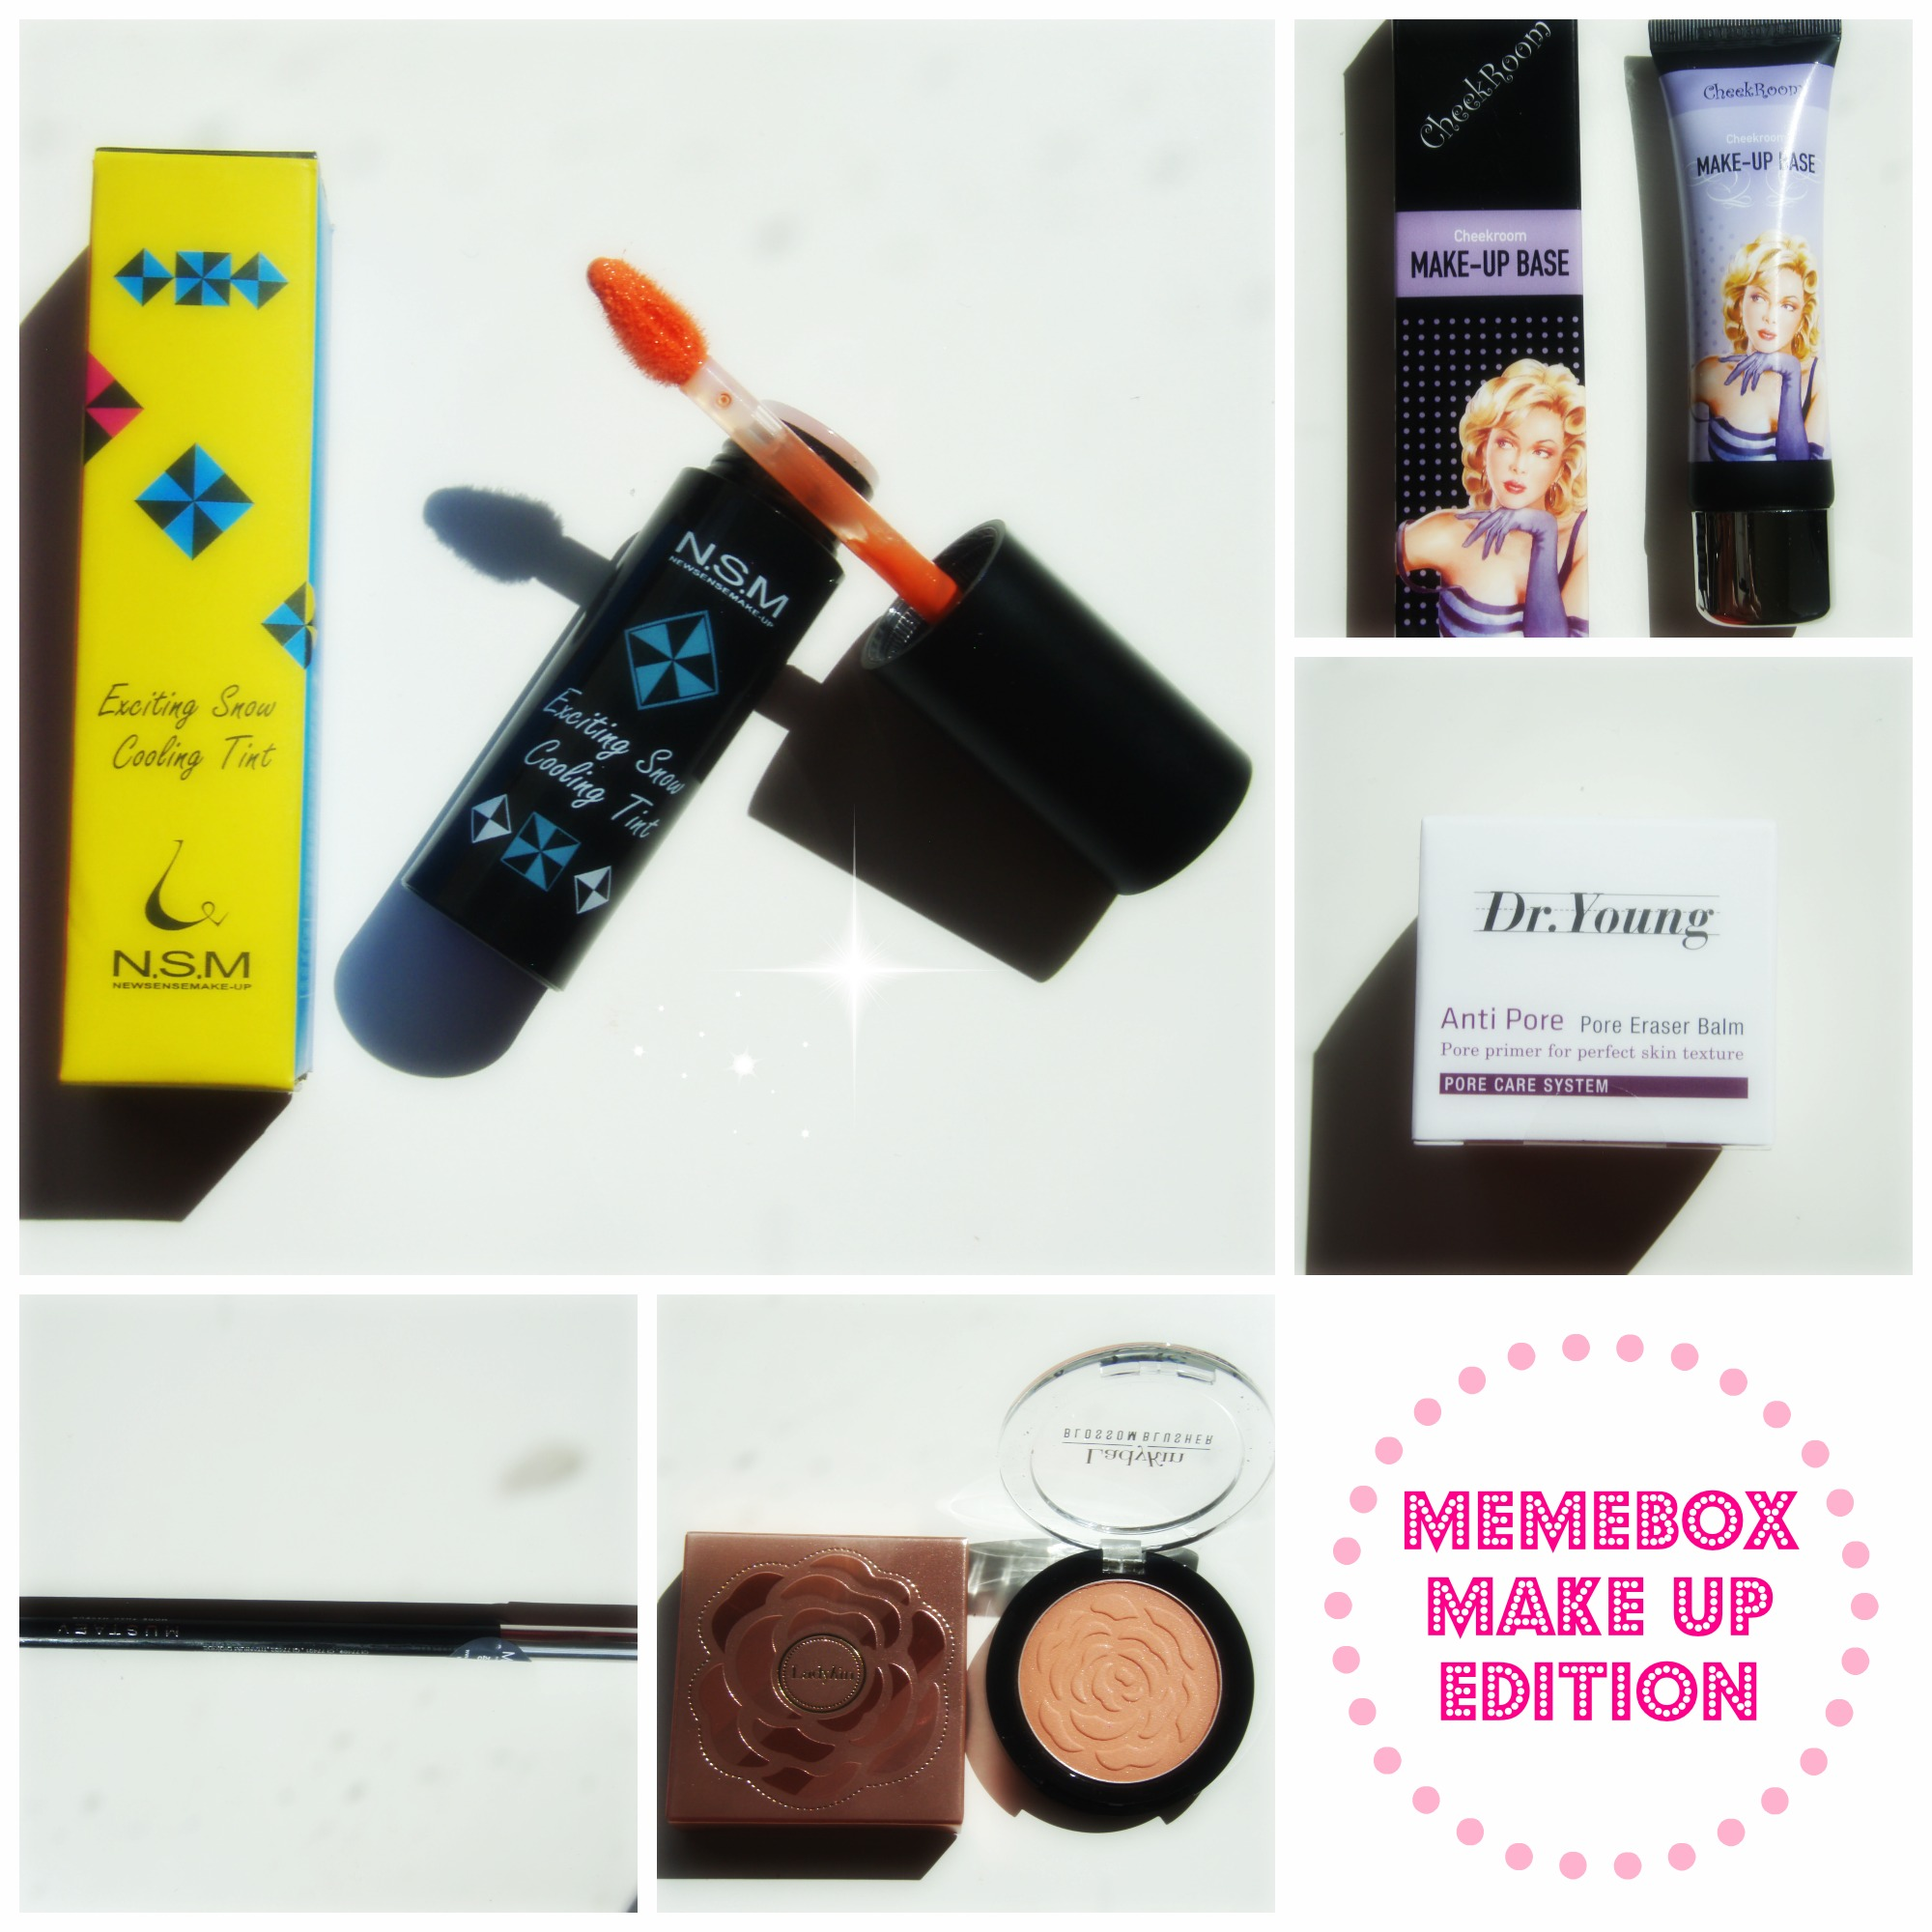 MEMEBOX-MAKEUP-EDITION-VOYAGE-EN-BEAUTE